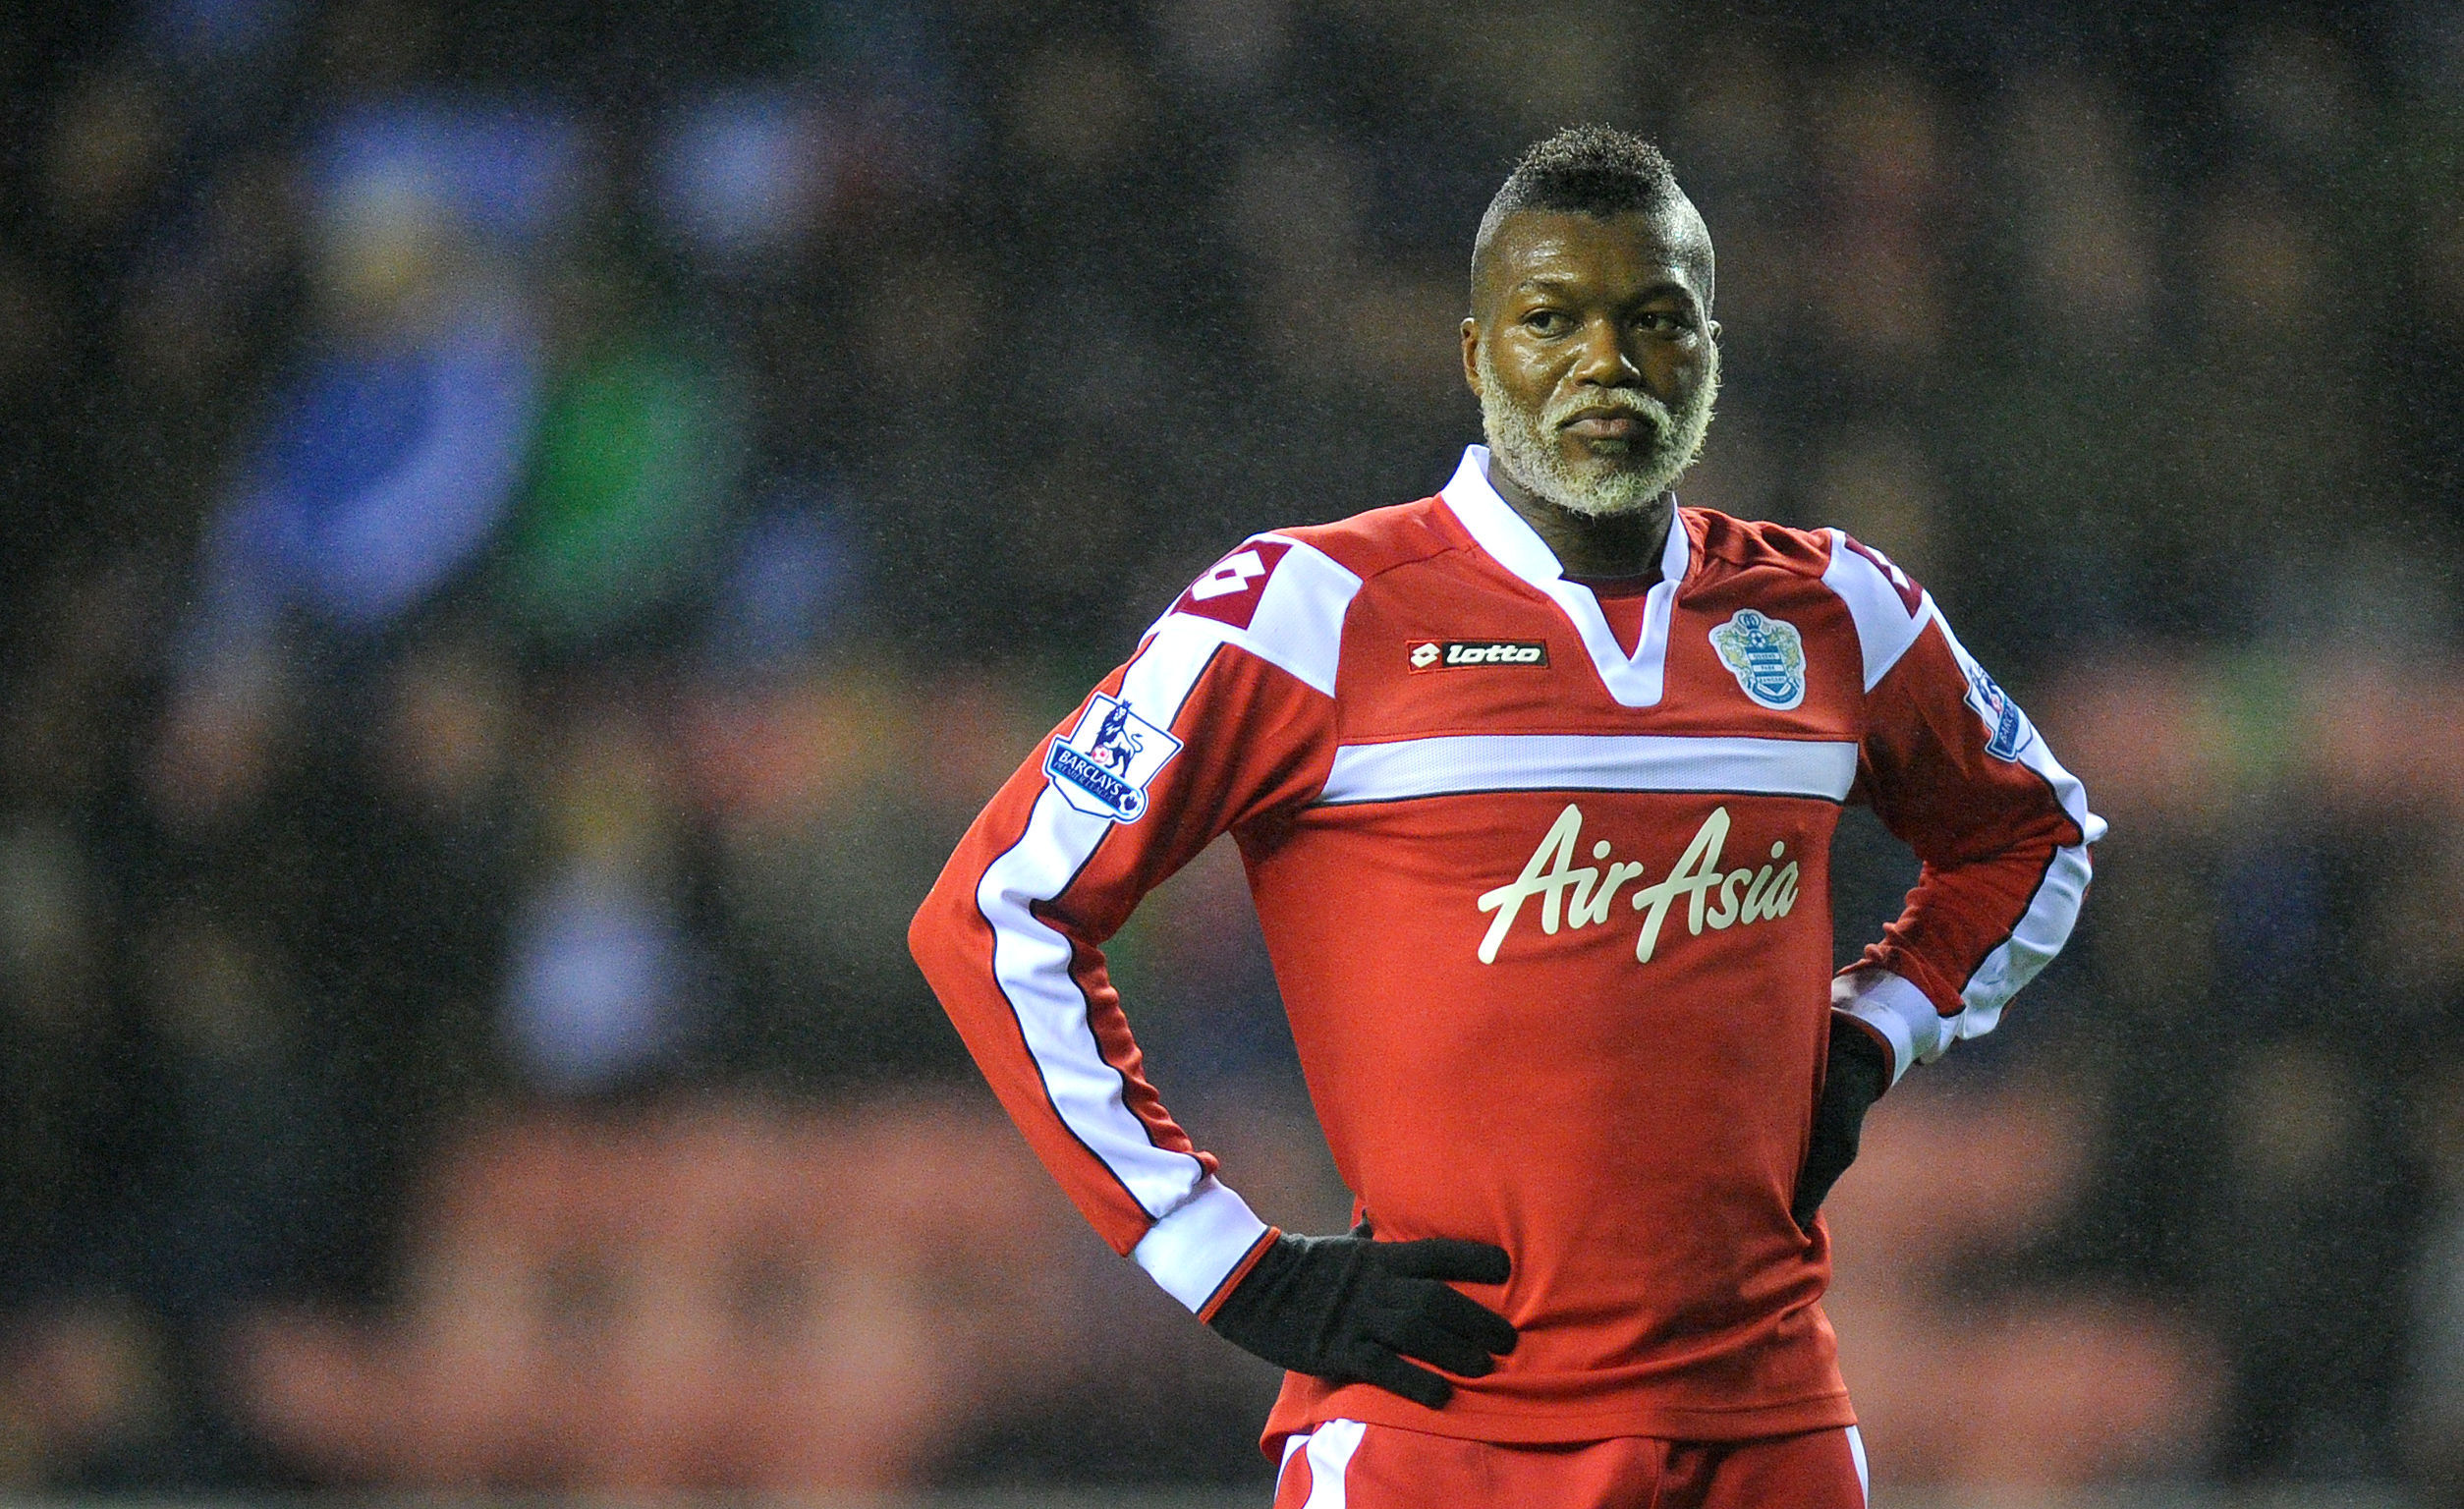 Style king: Djibril Cisse fancies himself a style icon (Picture: PA)